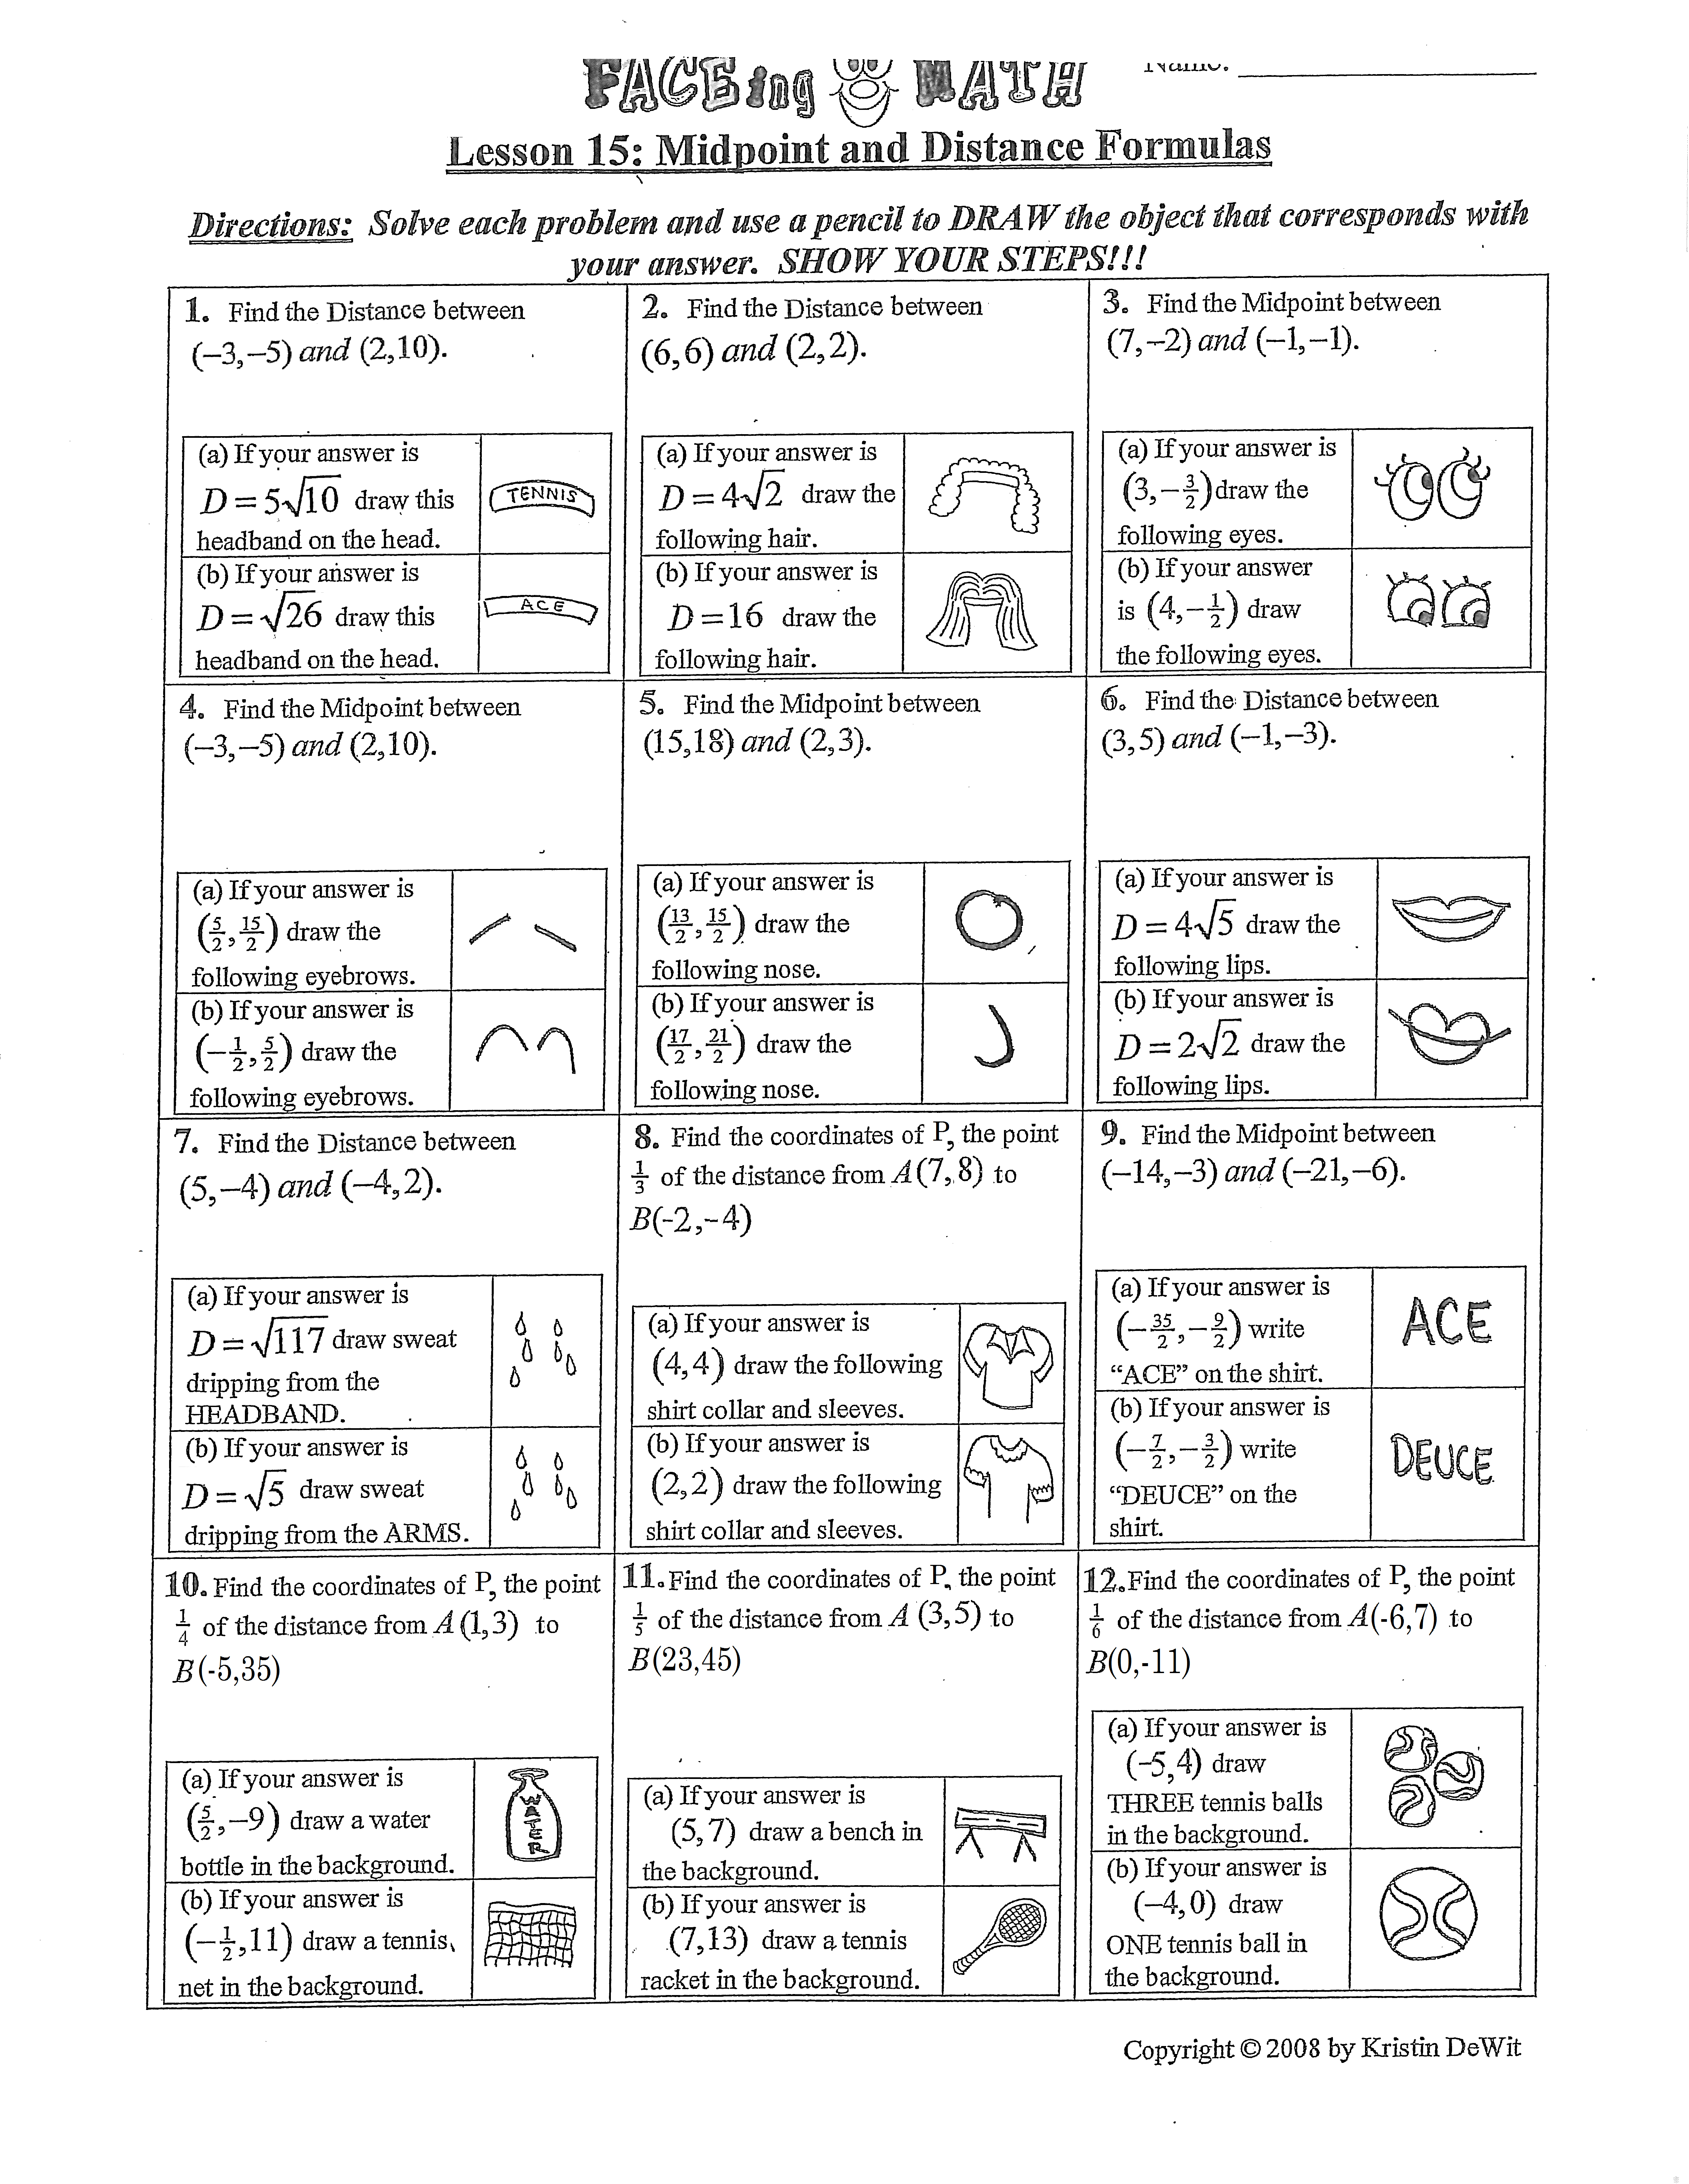 Faceing Math Printable Worksheets The Best Worksheets Image   Faceing Math Printable Worksheets